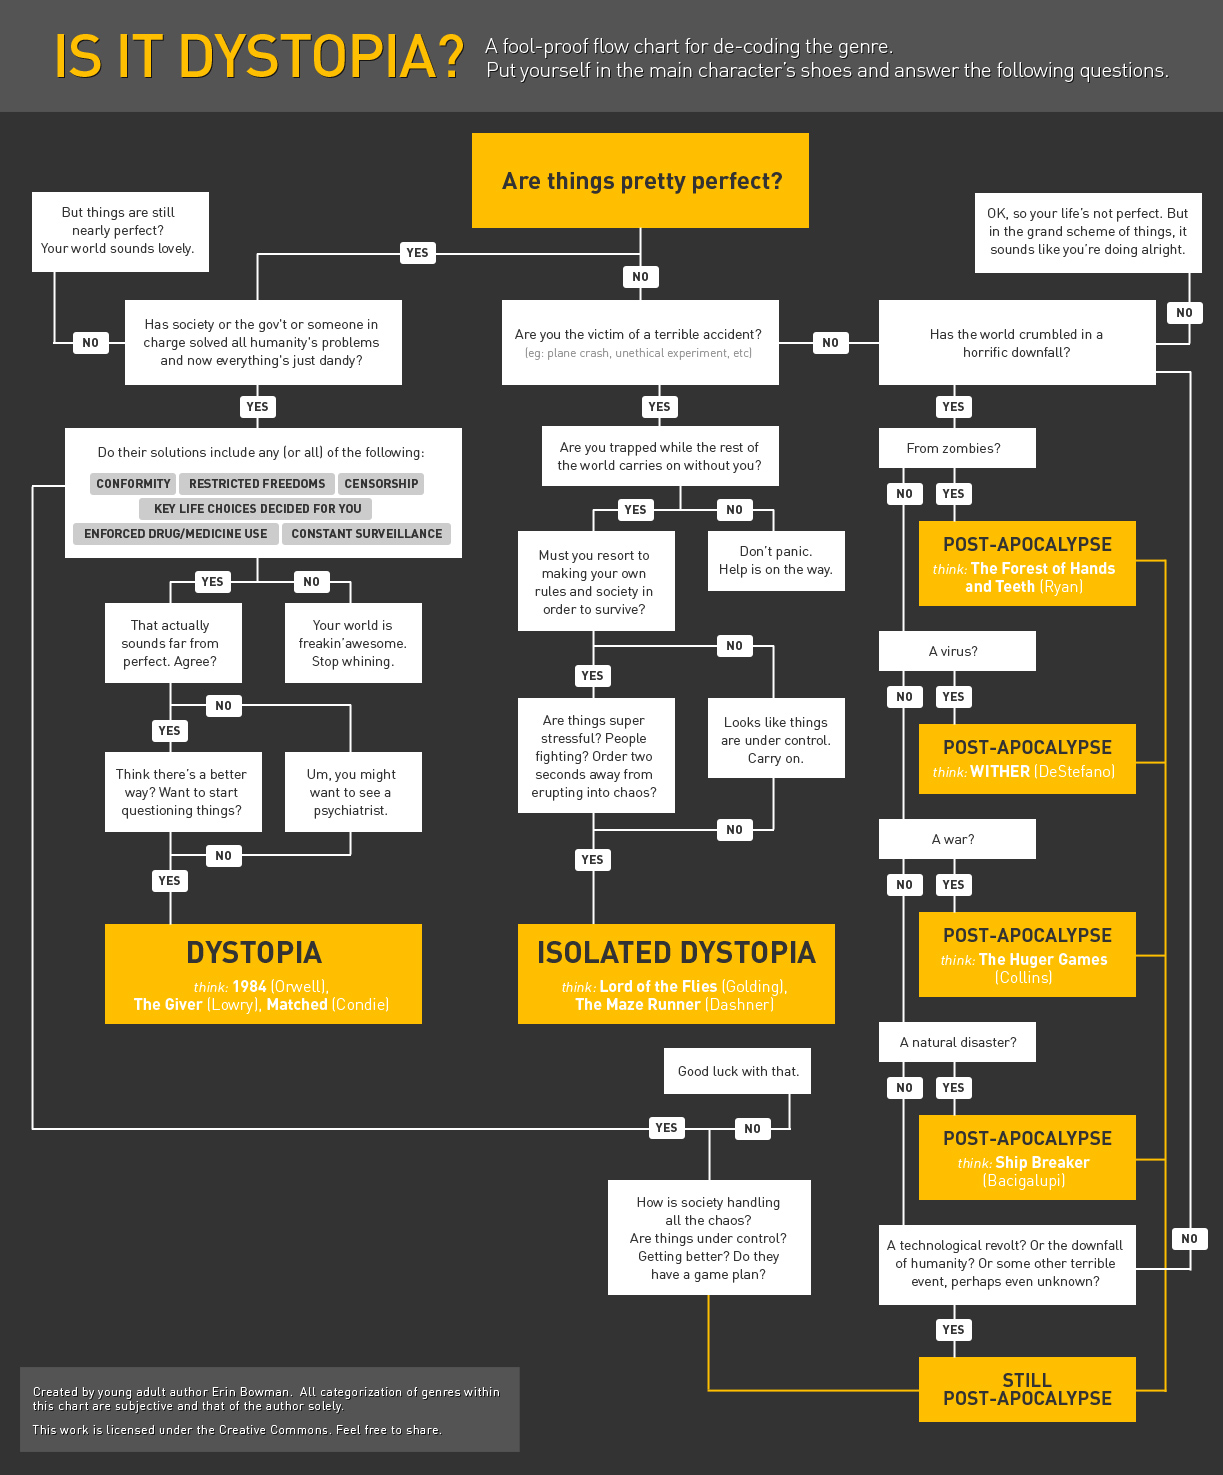 Is it Dystopia flowchart by Eric Bowman